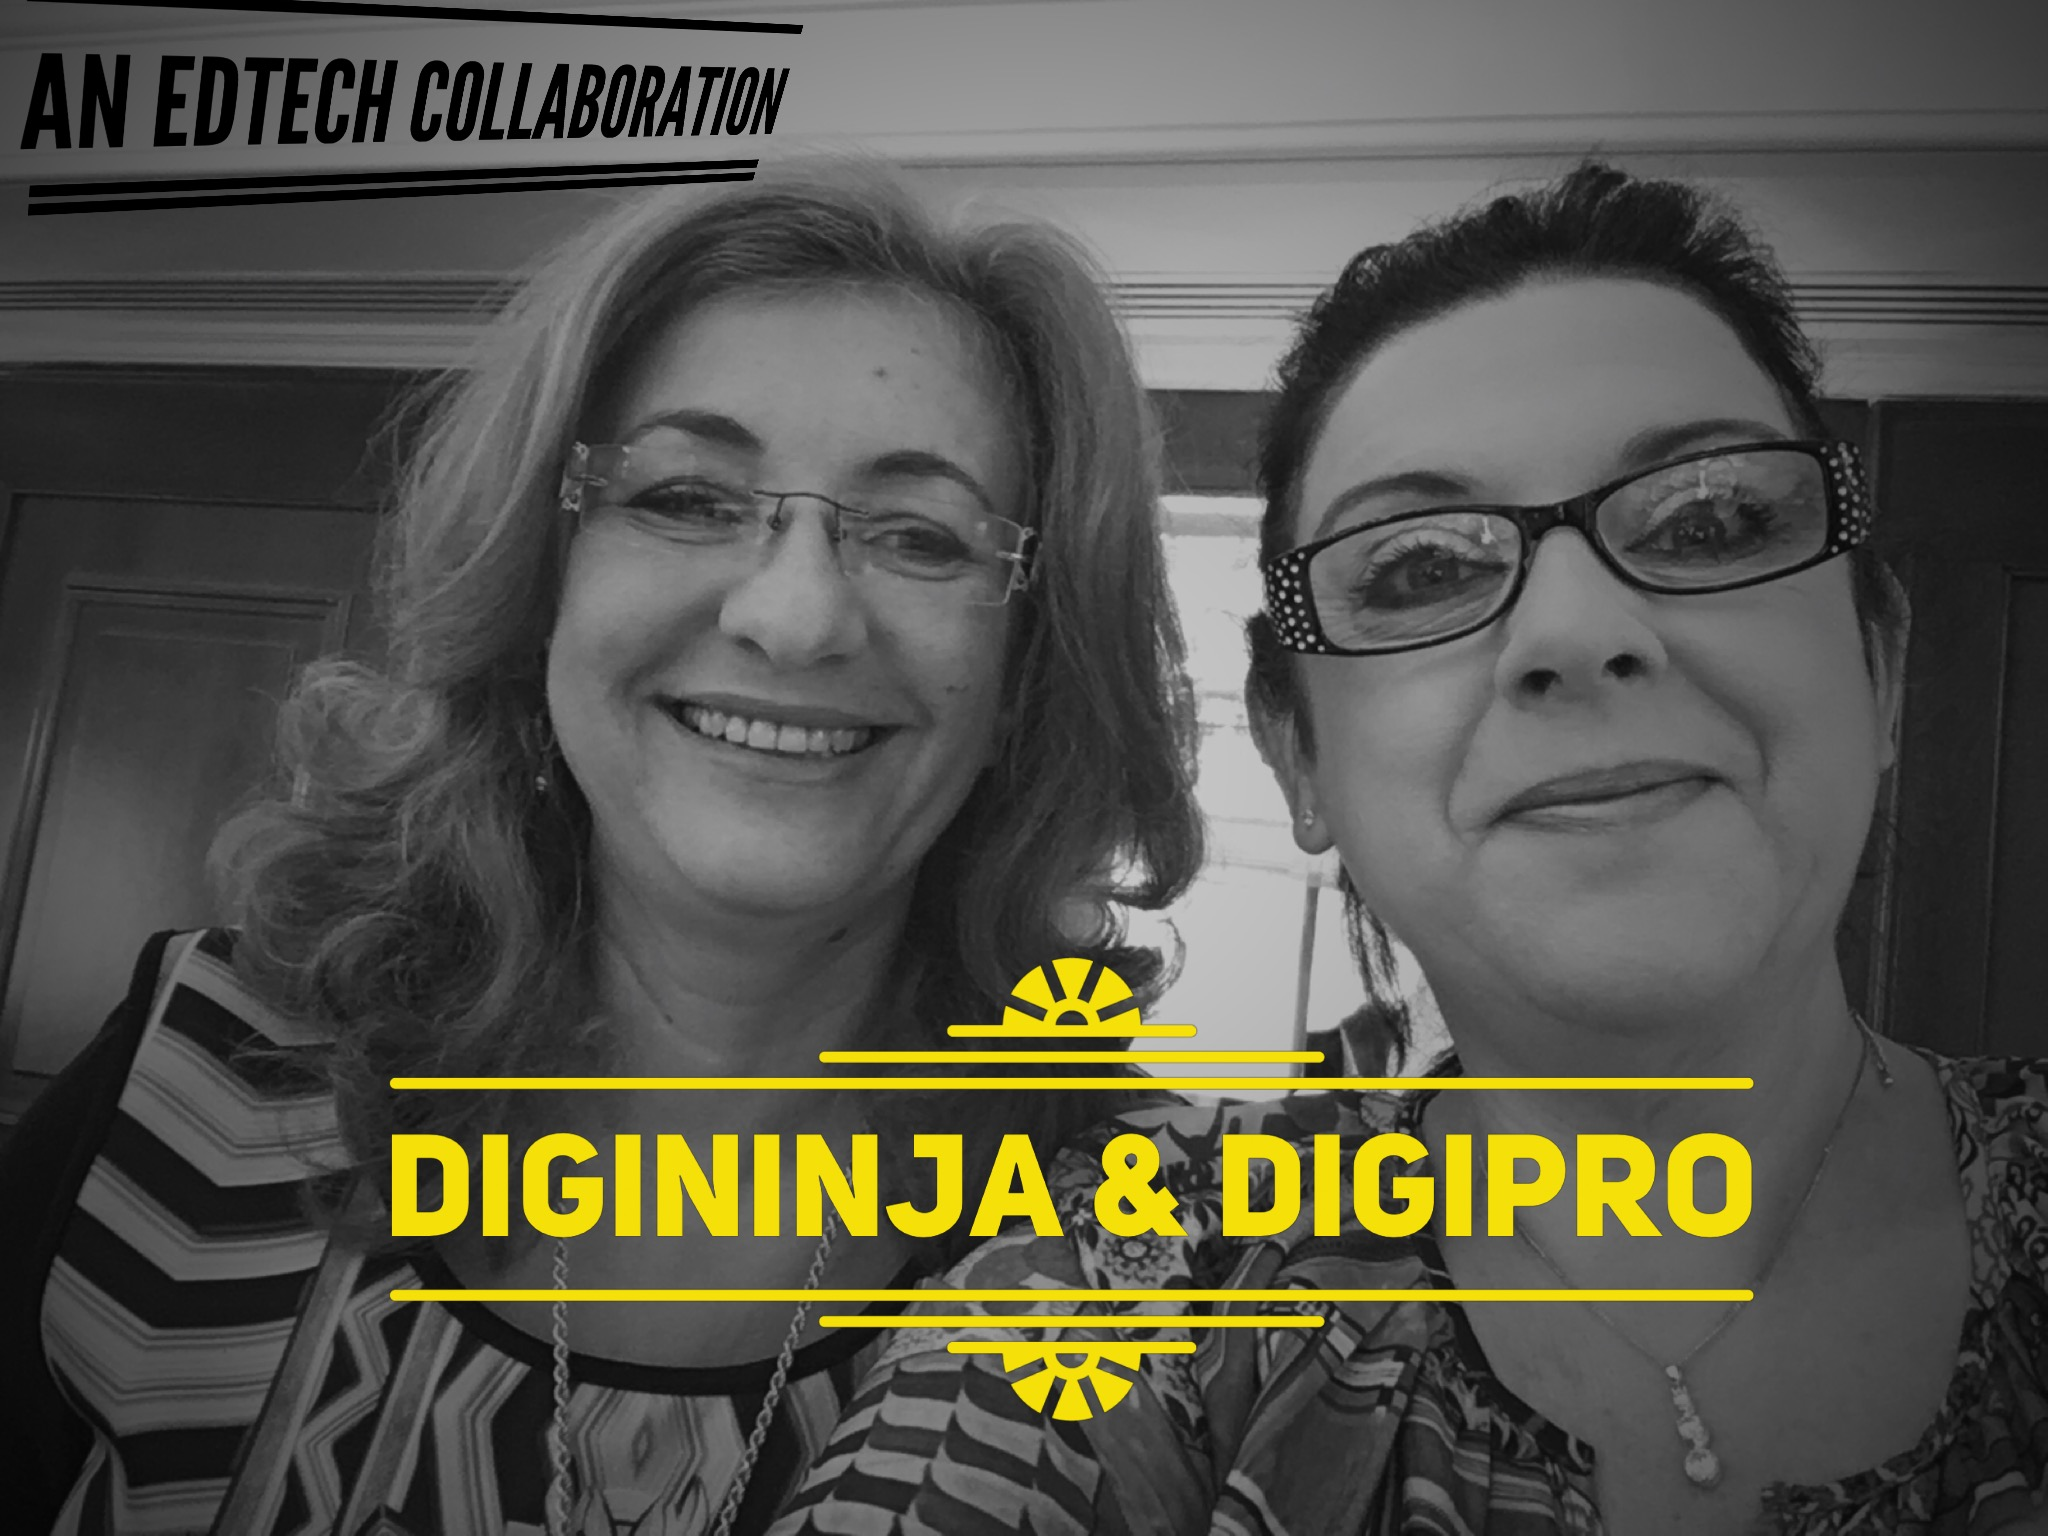 DigiNinja & DigiPro – an EdTech Collaboration